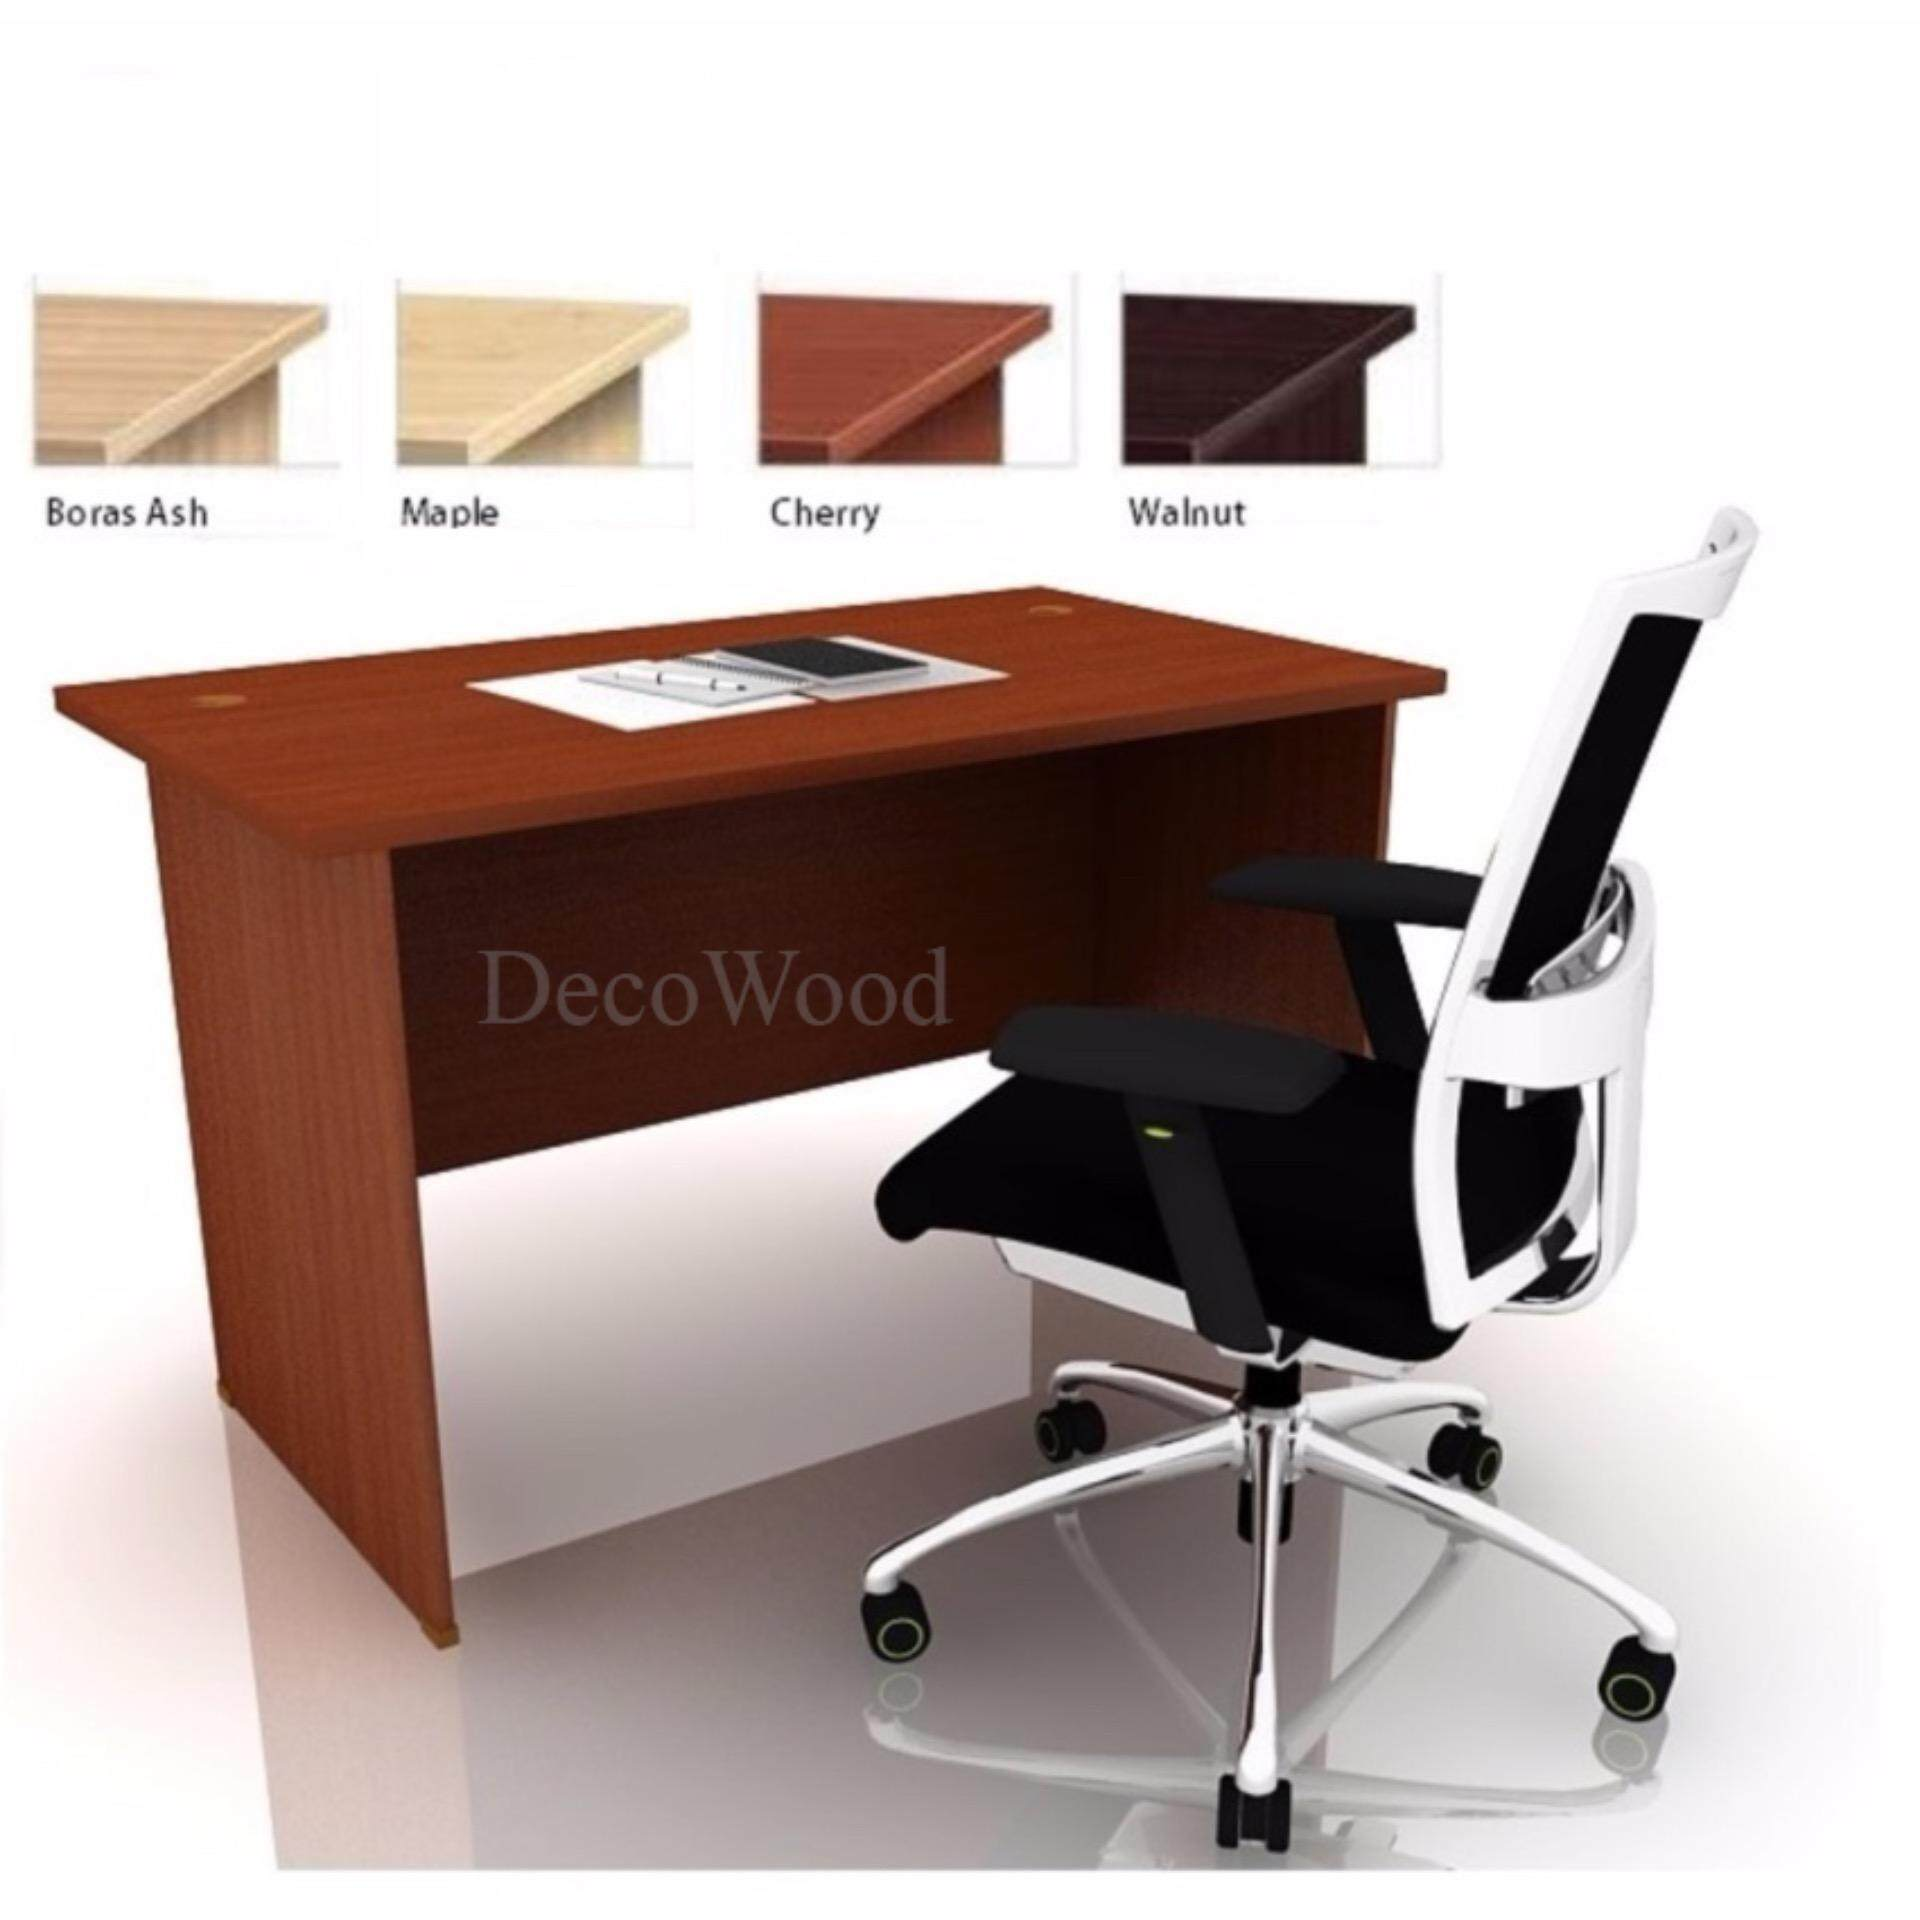 DECO OFFICE TABLE OFFICE DESK OFFICE MEETING TABLE DISCUSSION TABLE WRITING TABLE STUDY TABLE DIRECTOR TABLE BOSS TABLE CLERK TABLE STAFF TABLE CONFERENCE TABLE DINING TABLE RESTING TABLE STAFF TABLE EXT126 1200MM(L) X 600MM(D) X 750MM(H)